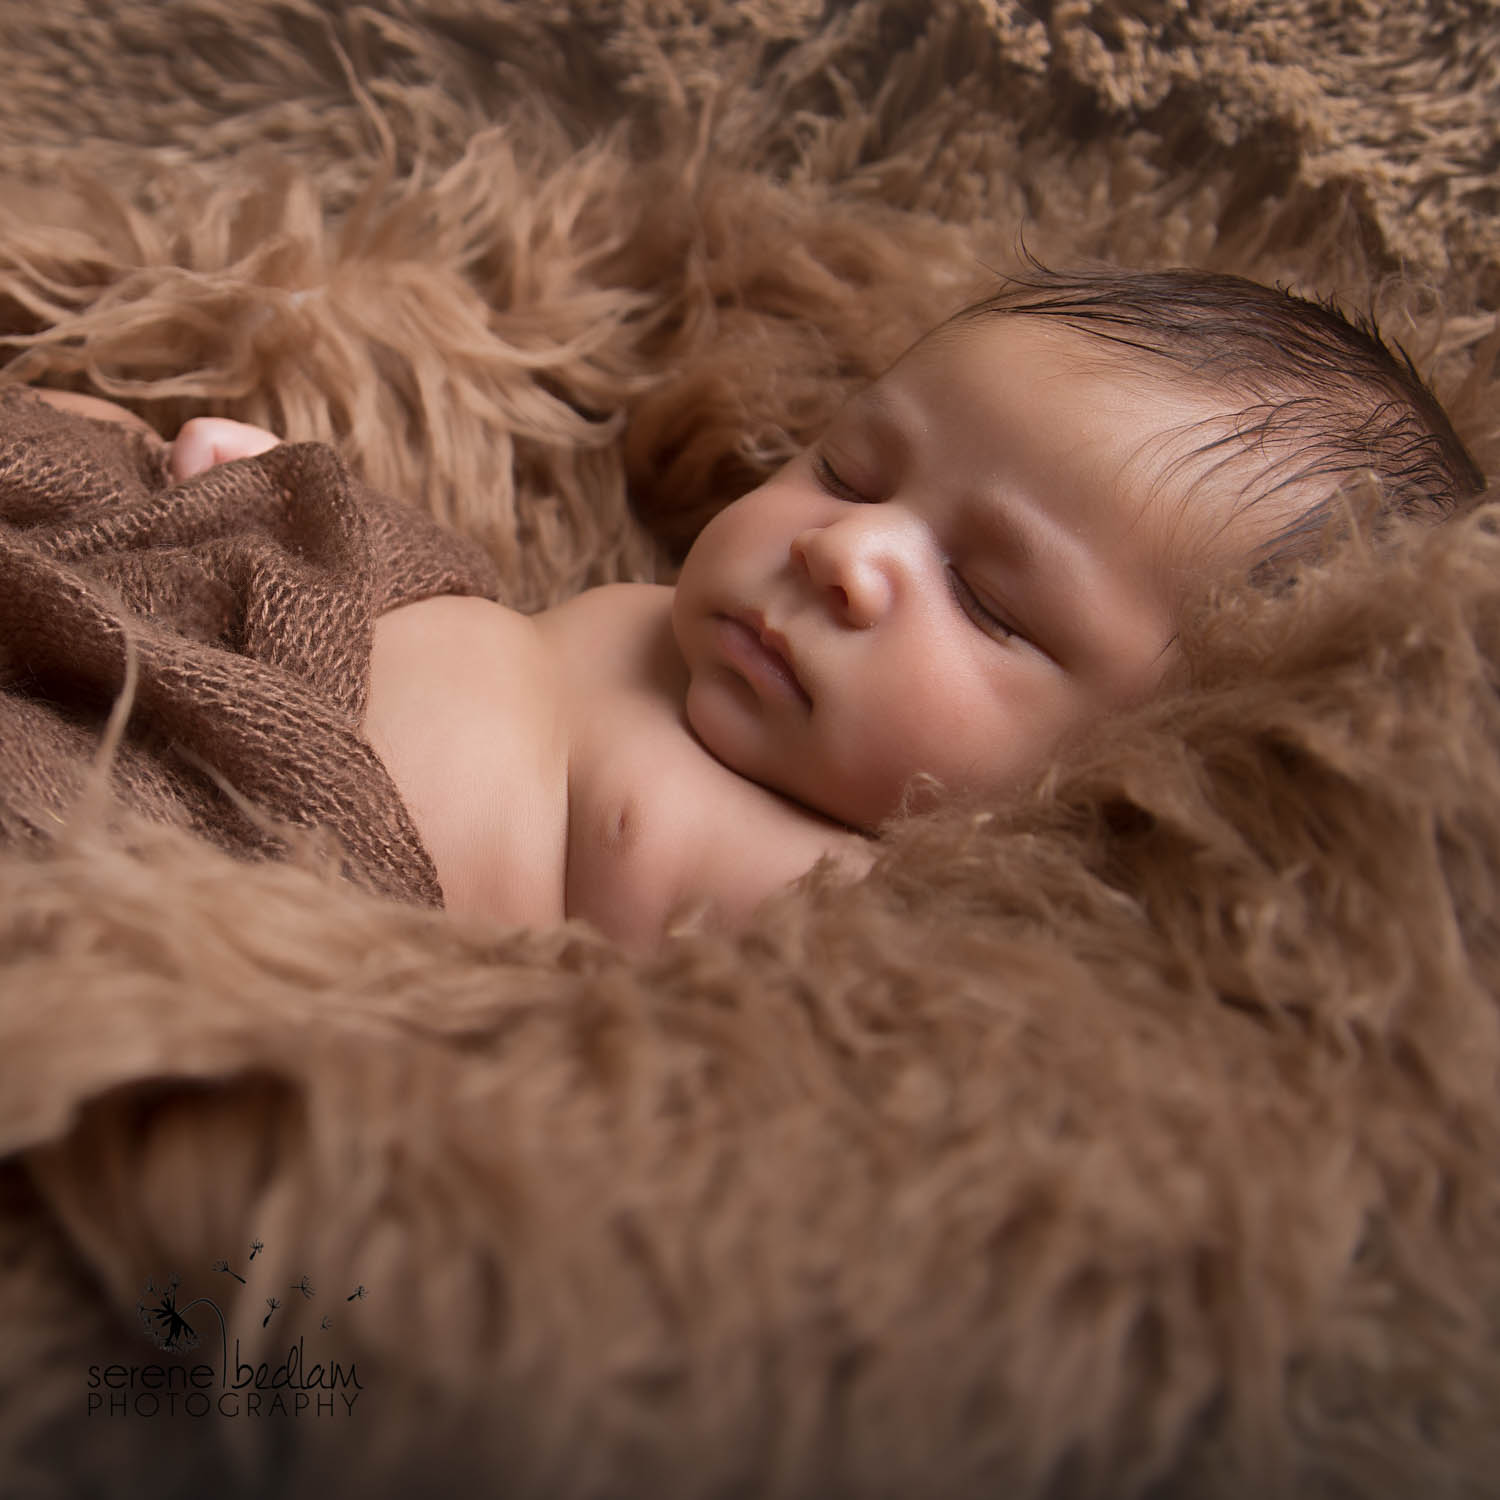 Serene Bedlam Newman Newborn Photography (7 of 10)